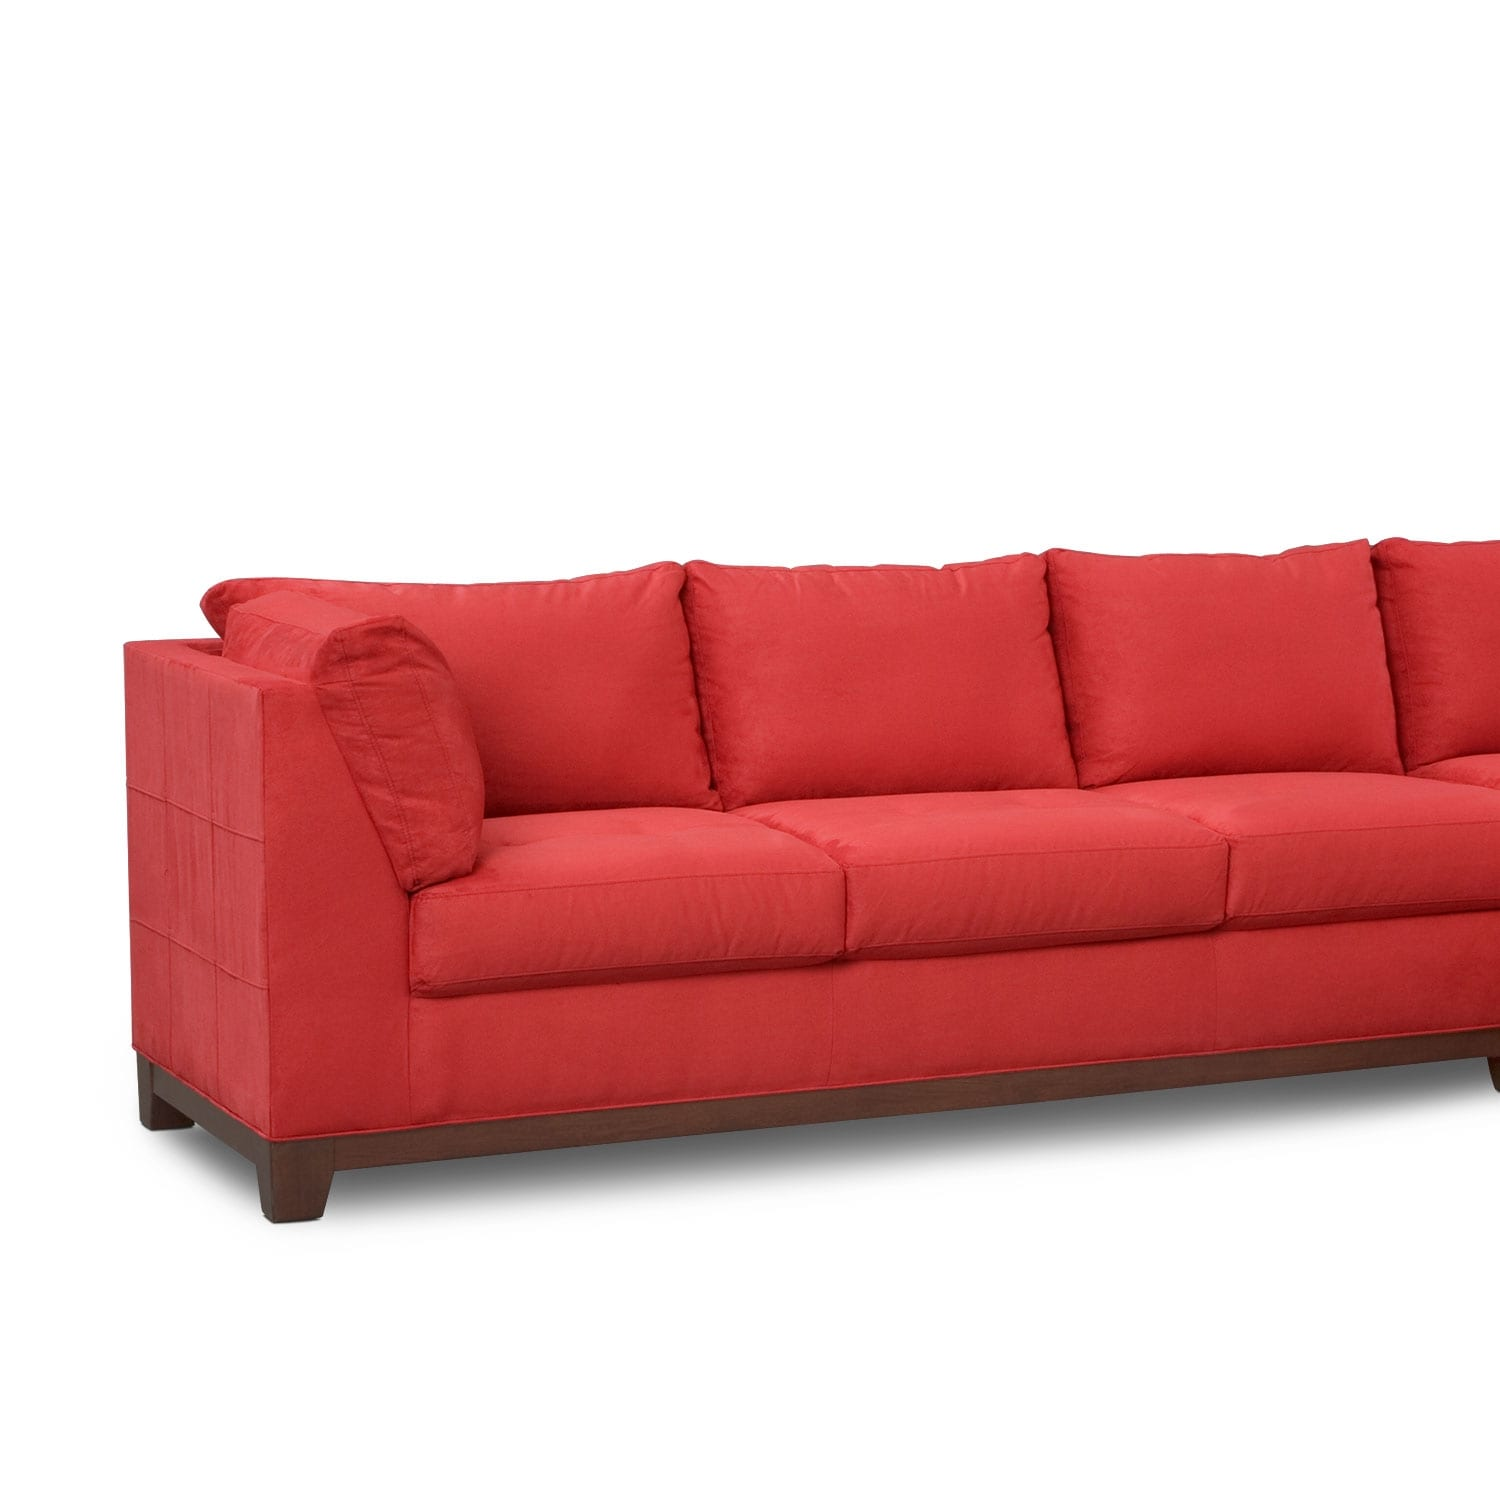 Soho 2 piece sectional with right facing chaise red for American signature furniture commercial chaise